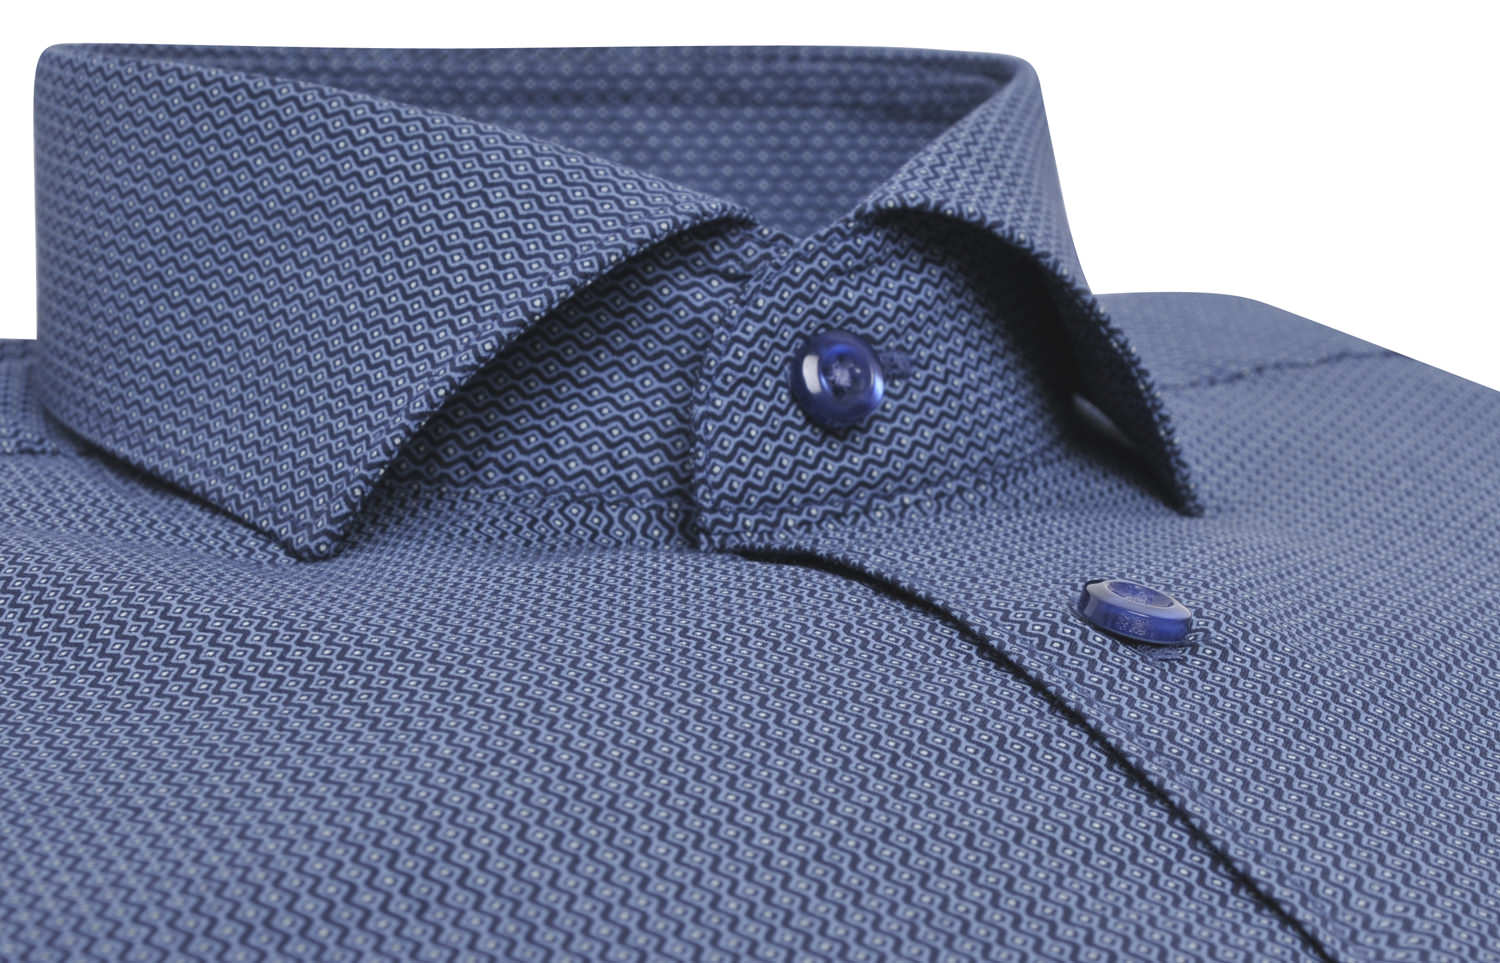 Cutaway Collar | Collar Pin Dress Shirt | Dress Shirt with Buttons on Collar